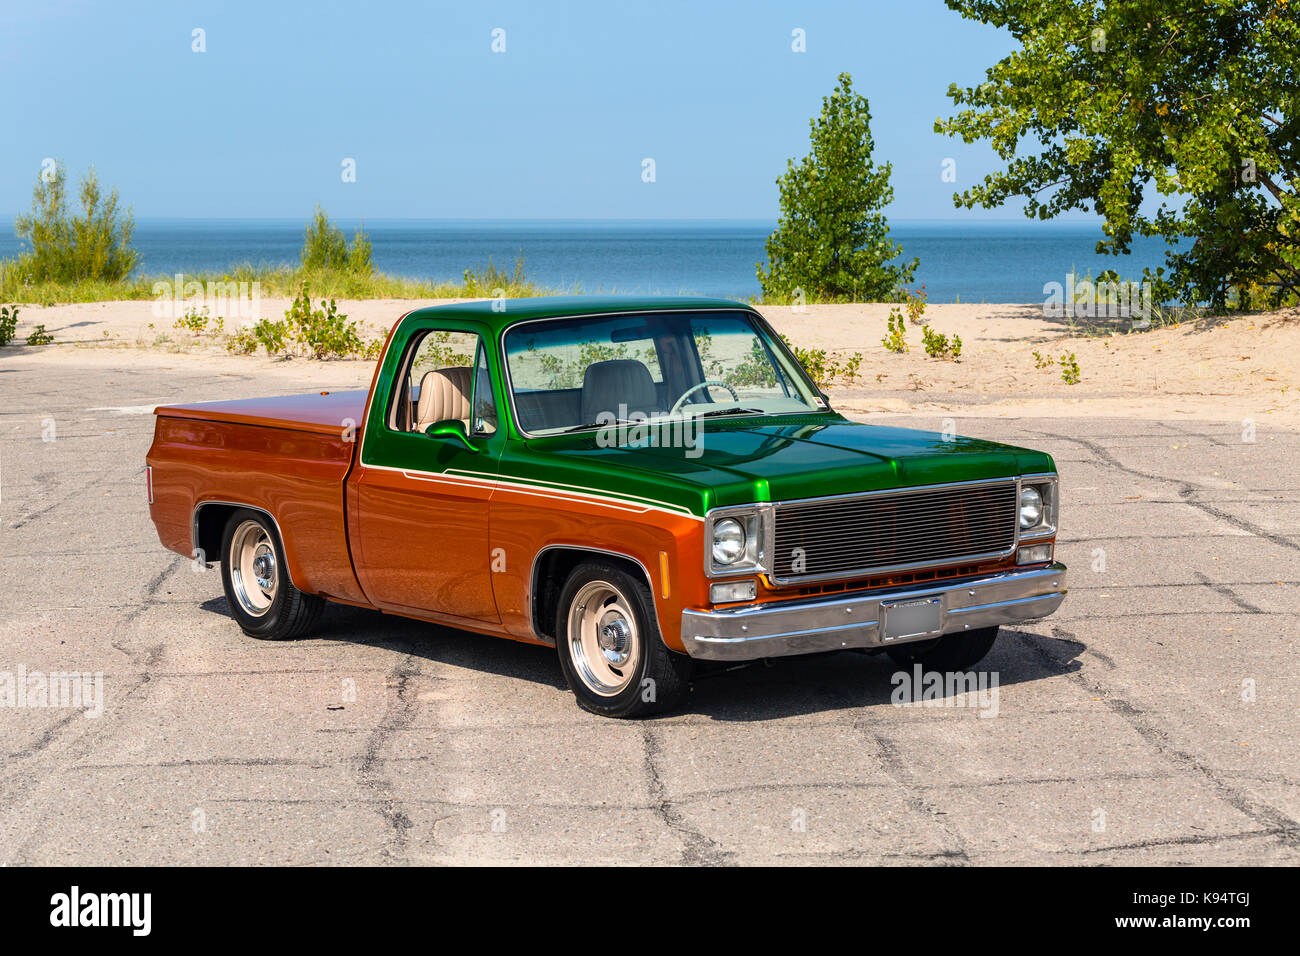 Modified Vintage Pickup Truck Classic Stock Photos & Modified ...